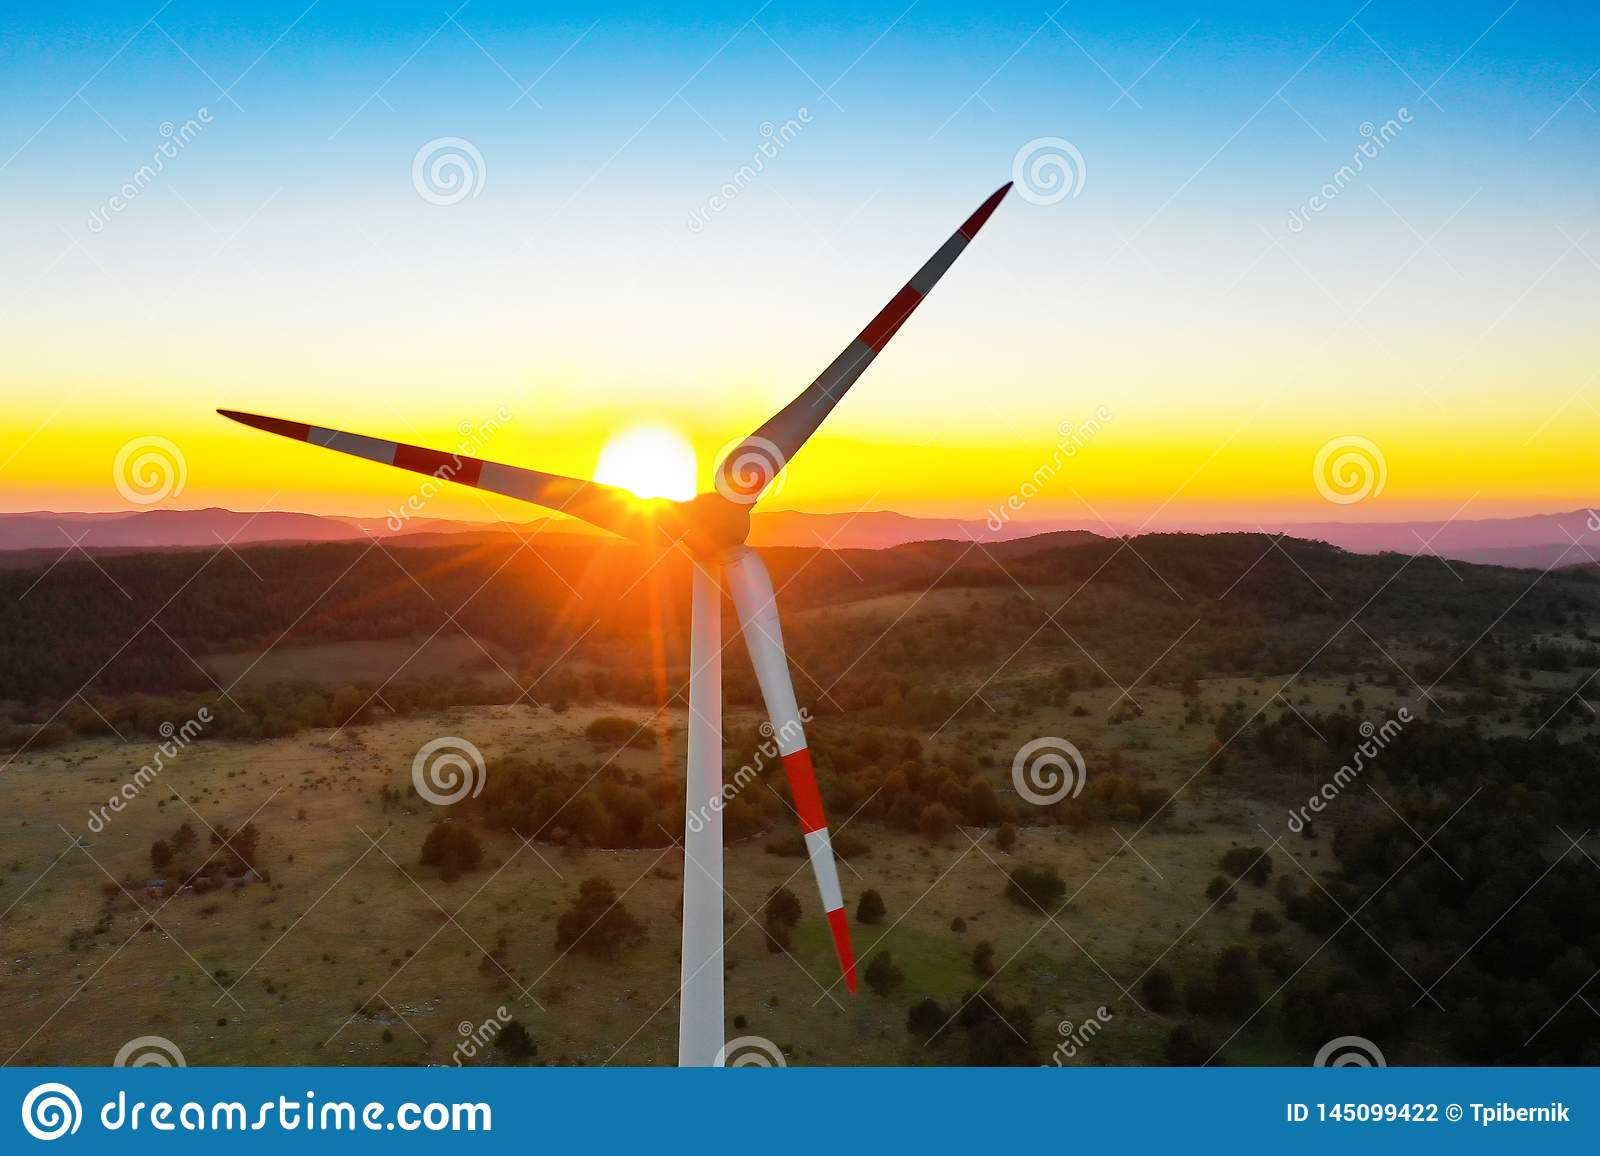 Turbina só do moinho de vento que gerencie pacificamente as lâminas através do vento no céu bonito do por do sol